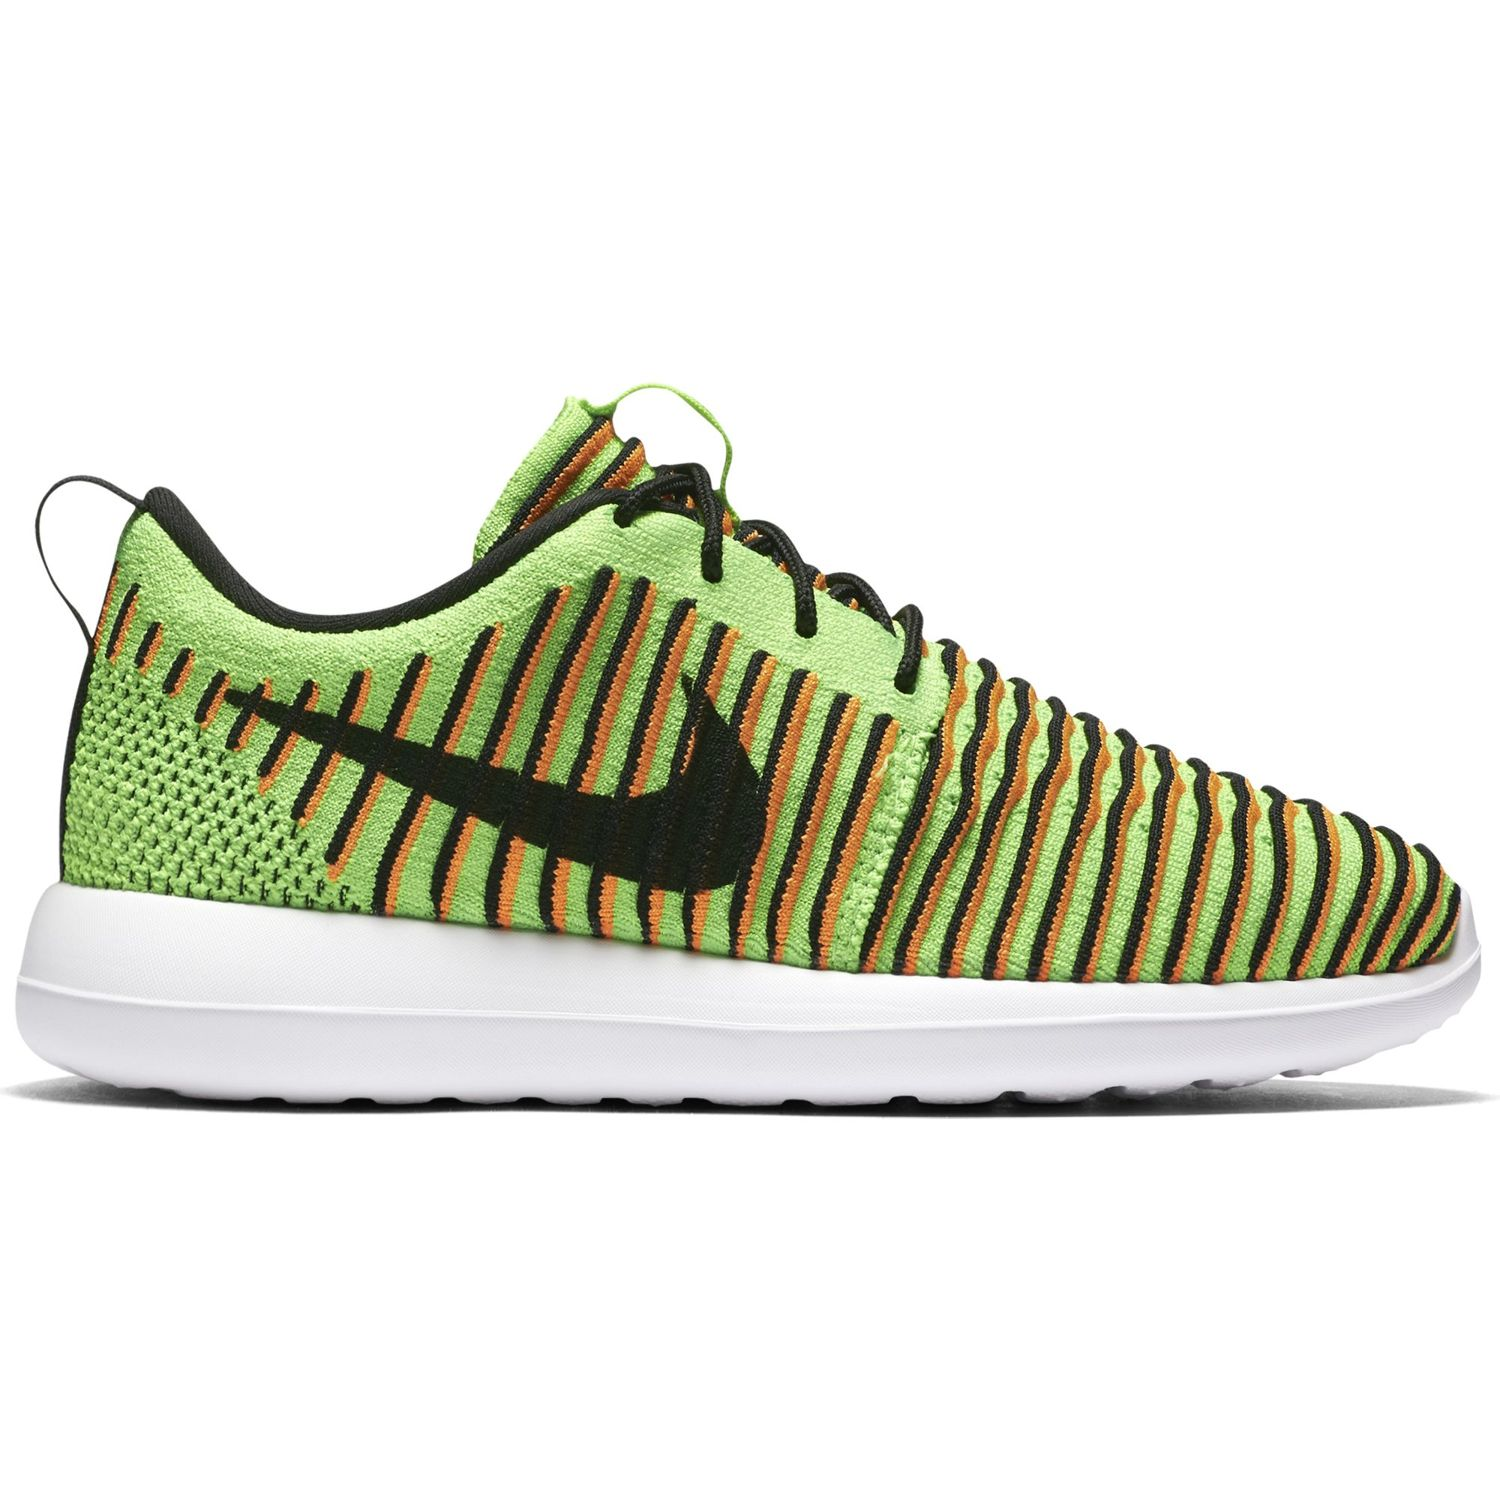 Nike Roshe Two Flyknit Electric Green 844619 300